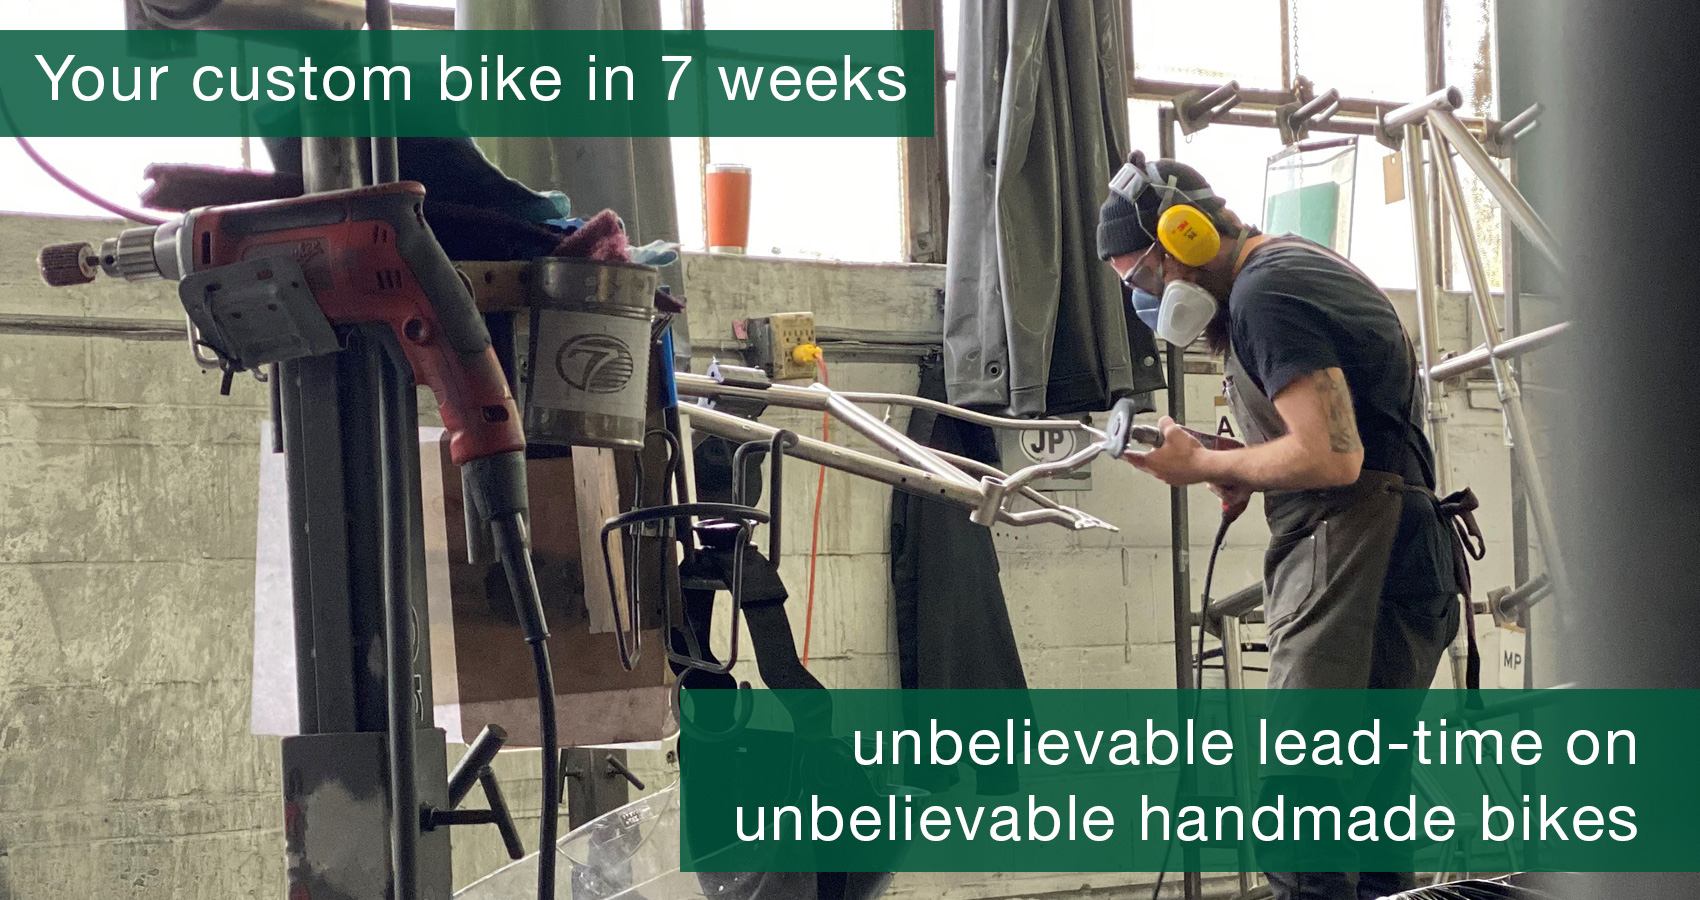 unbelievable lead time on unbeleiveable handmade bikes